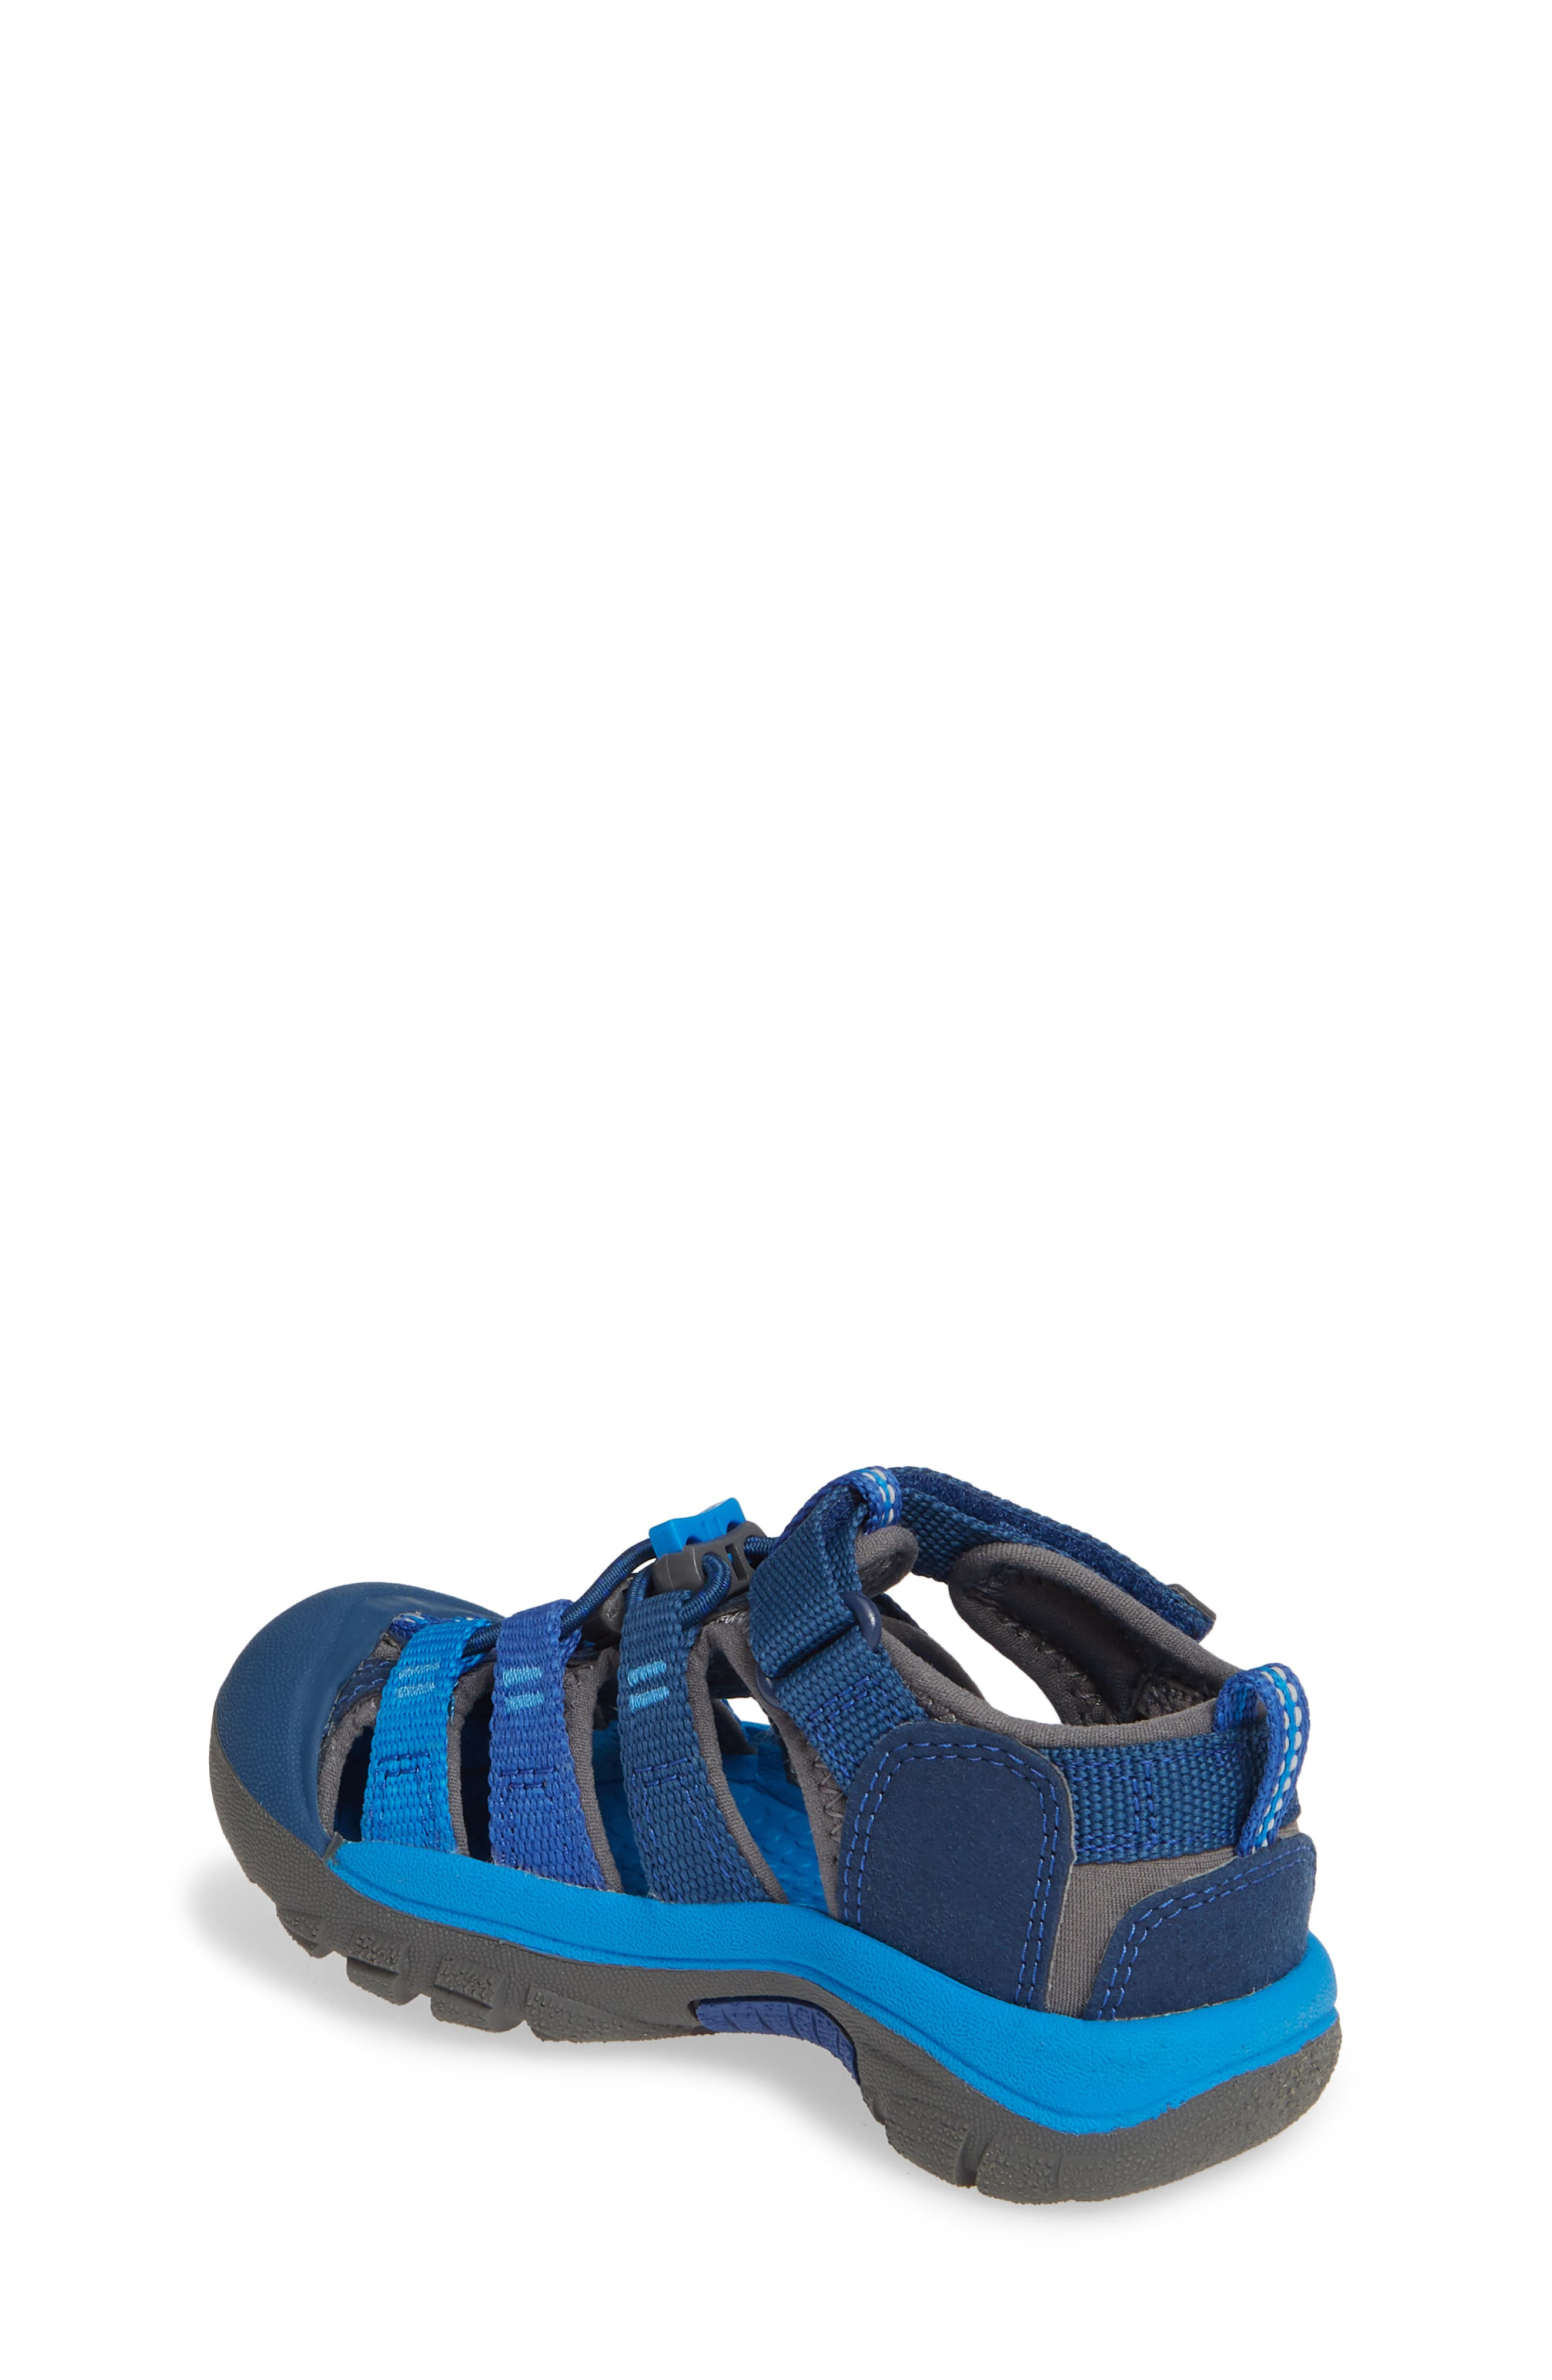 ,                             'Newport H2' Water Friendly Sandal,                             Alternate thumbnail 90, color,                             418